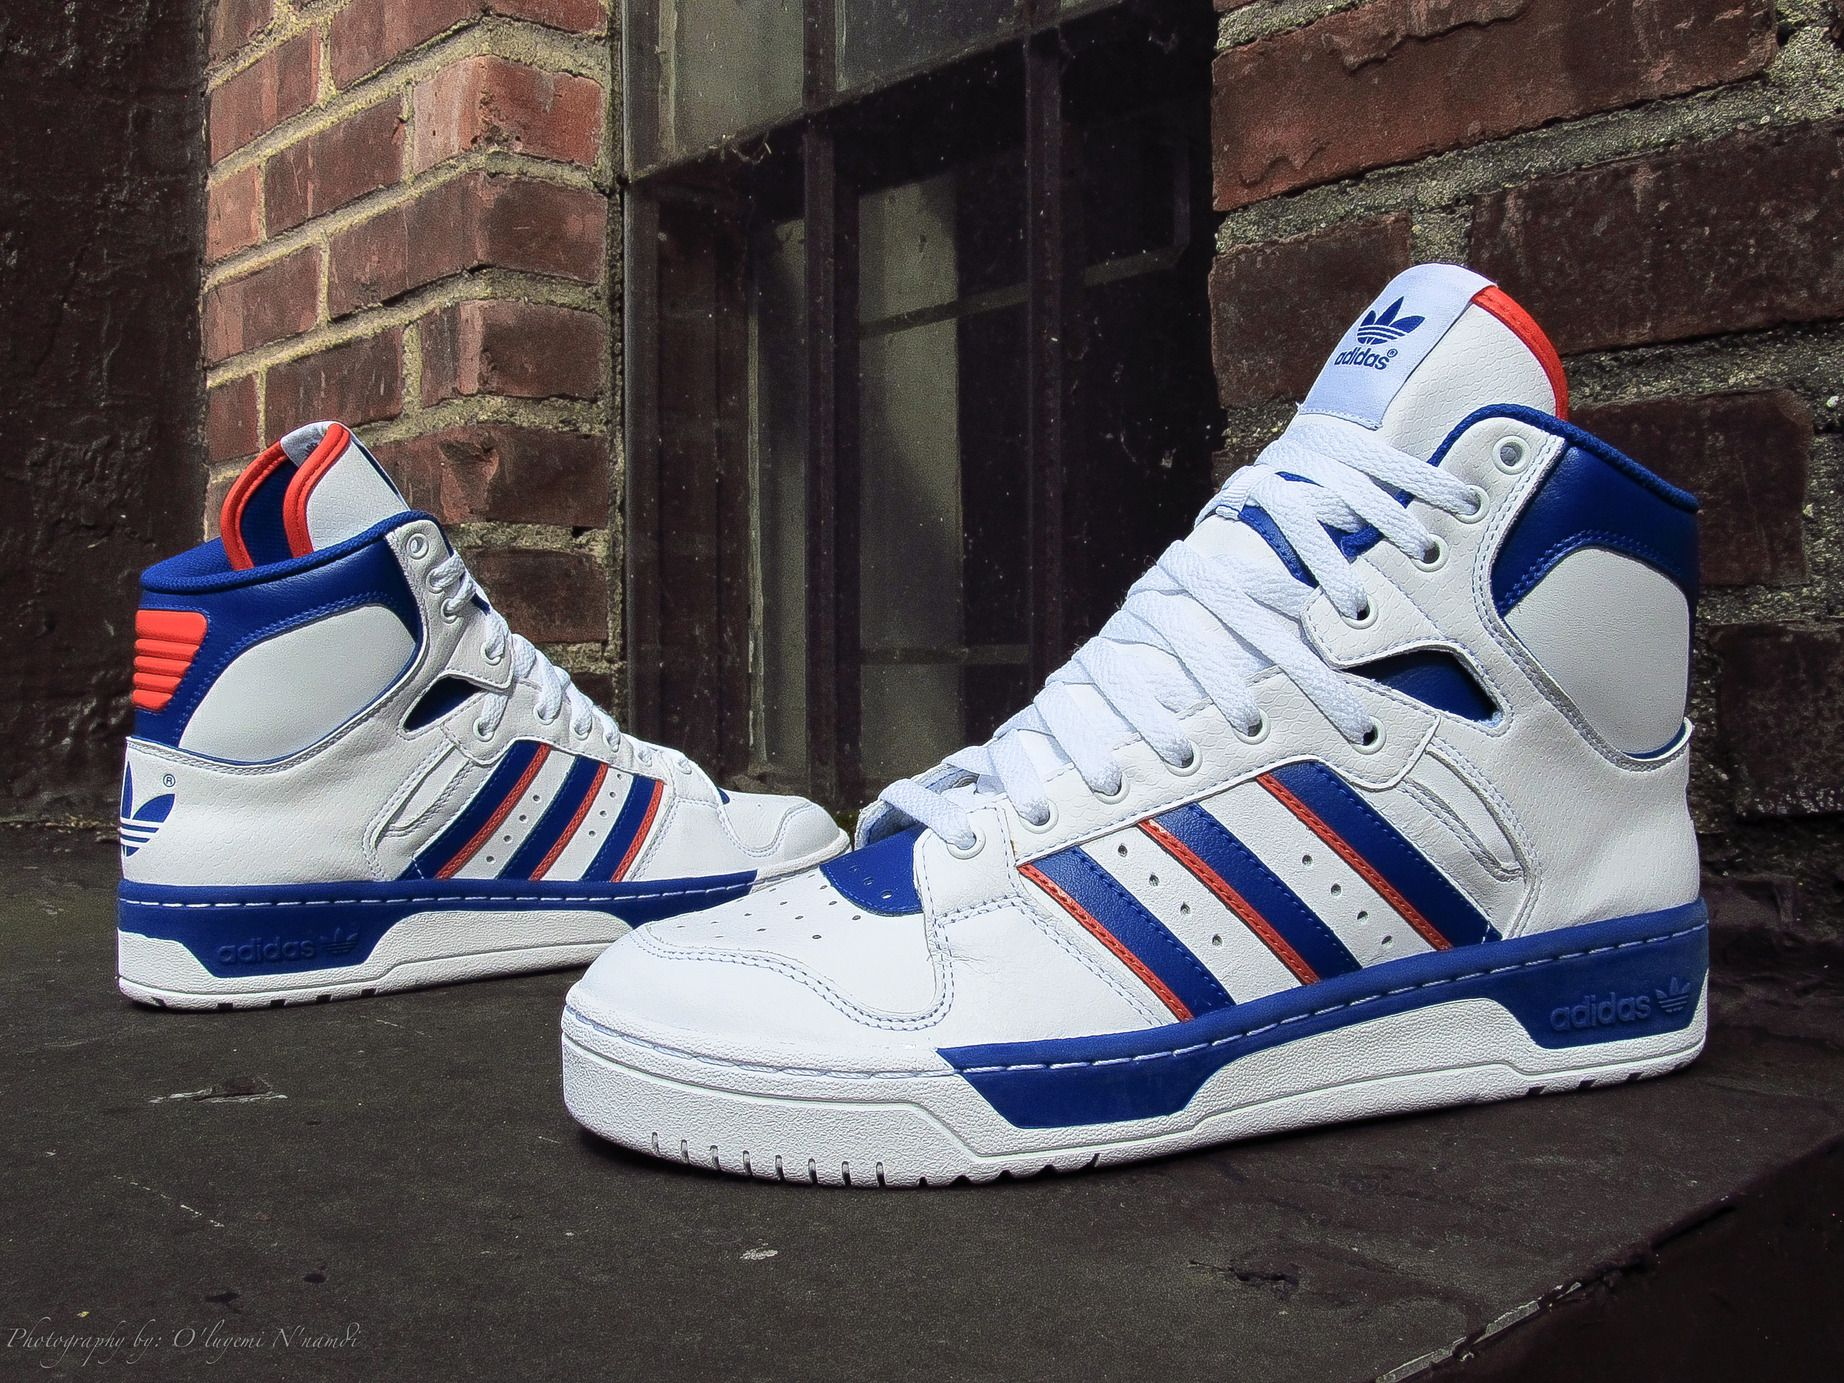 Adidas Conductor Hi Ewing. One of the best basketball shoes ever